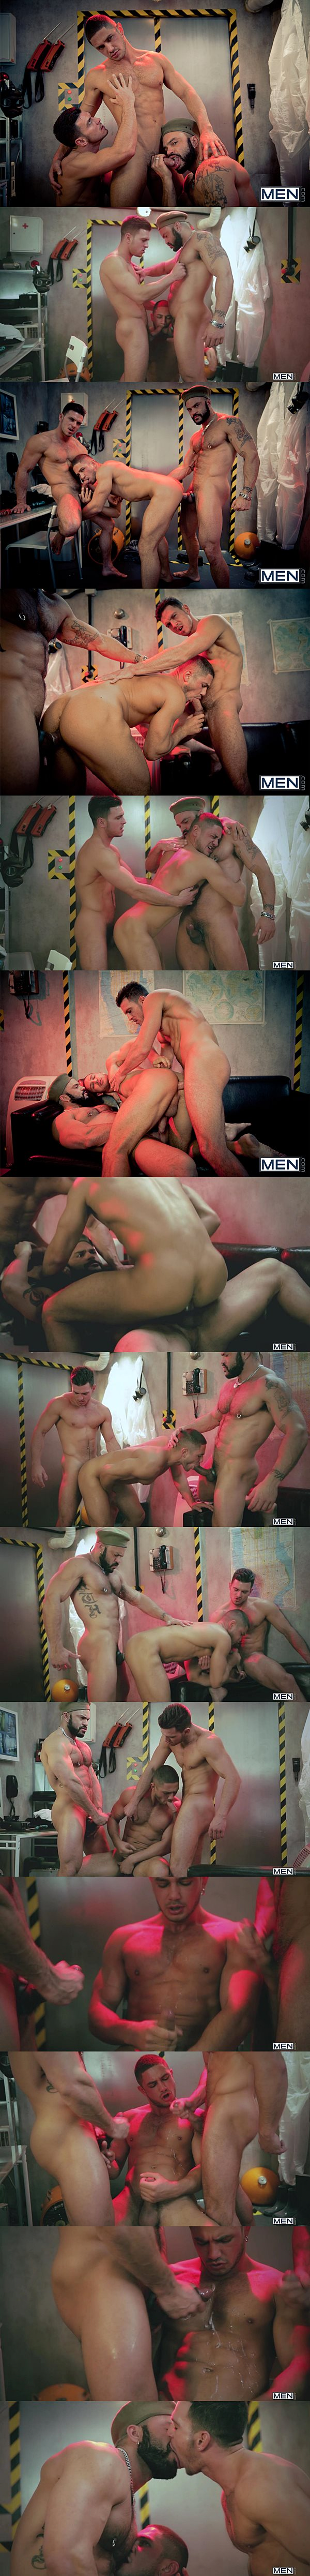 Masculine Paddy O'Brian & Rogan Richards fuck hot Russian stud Dato Foland in The End Part 2 at Drillmyhole 02